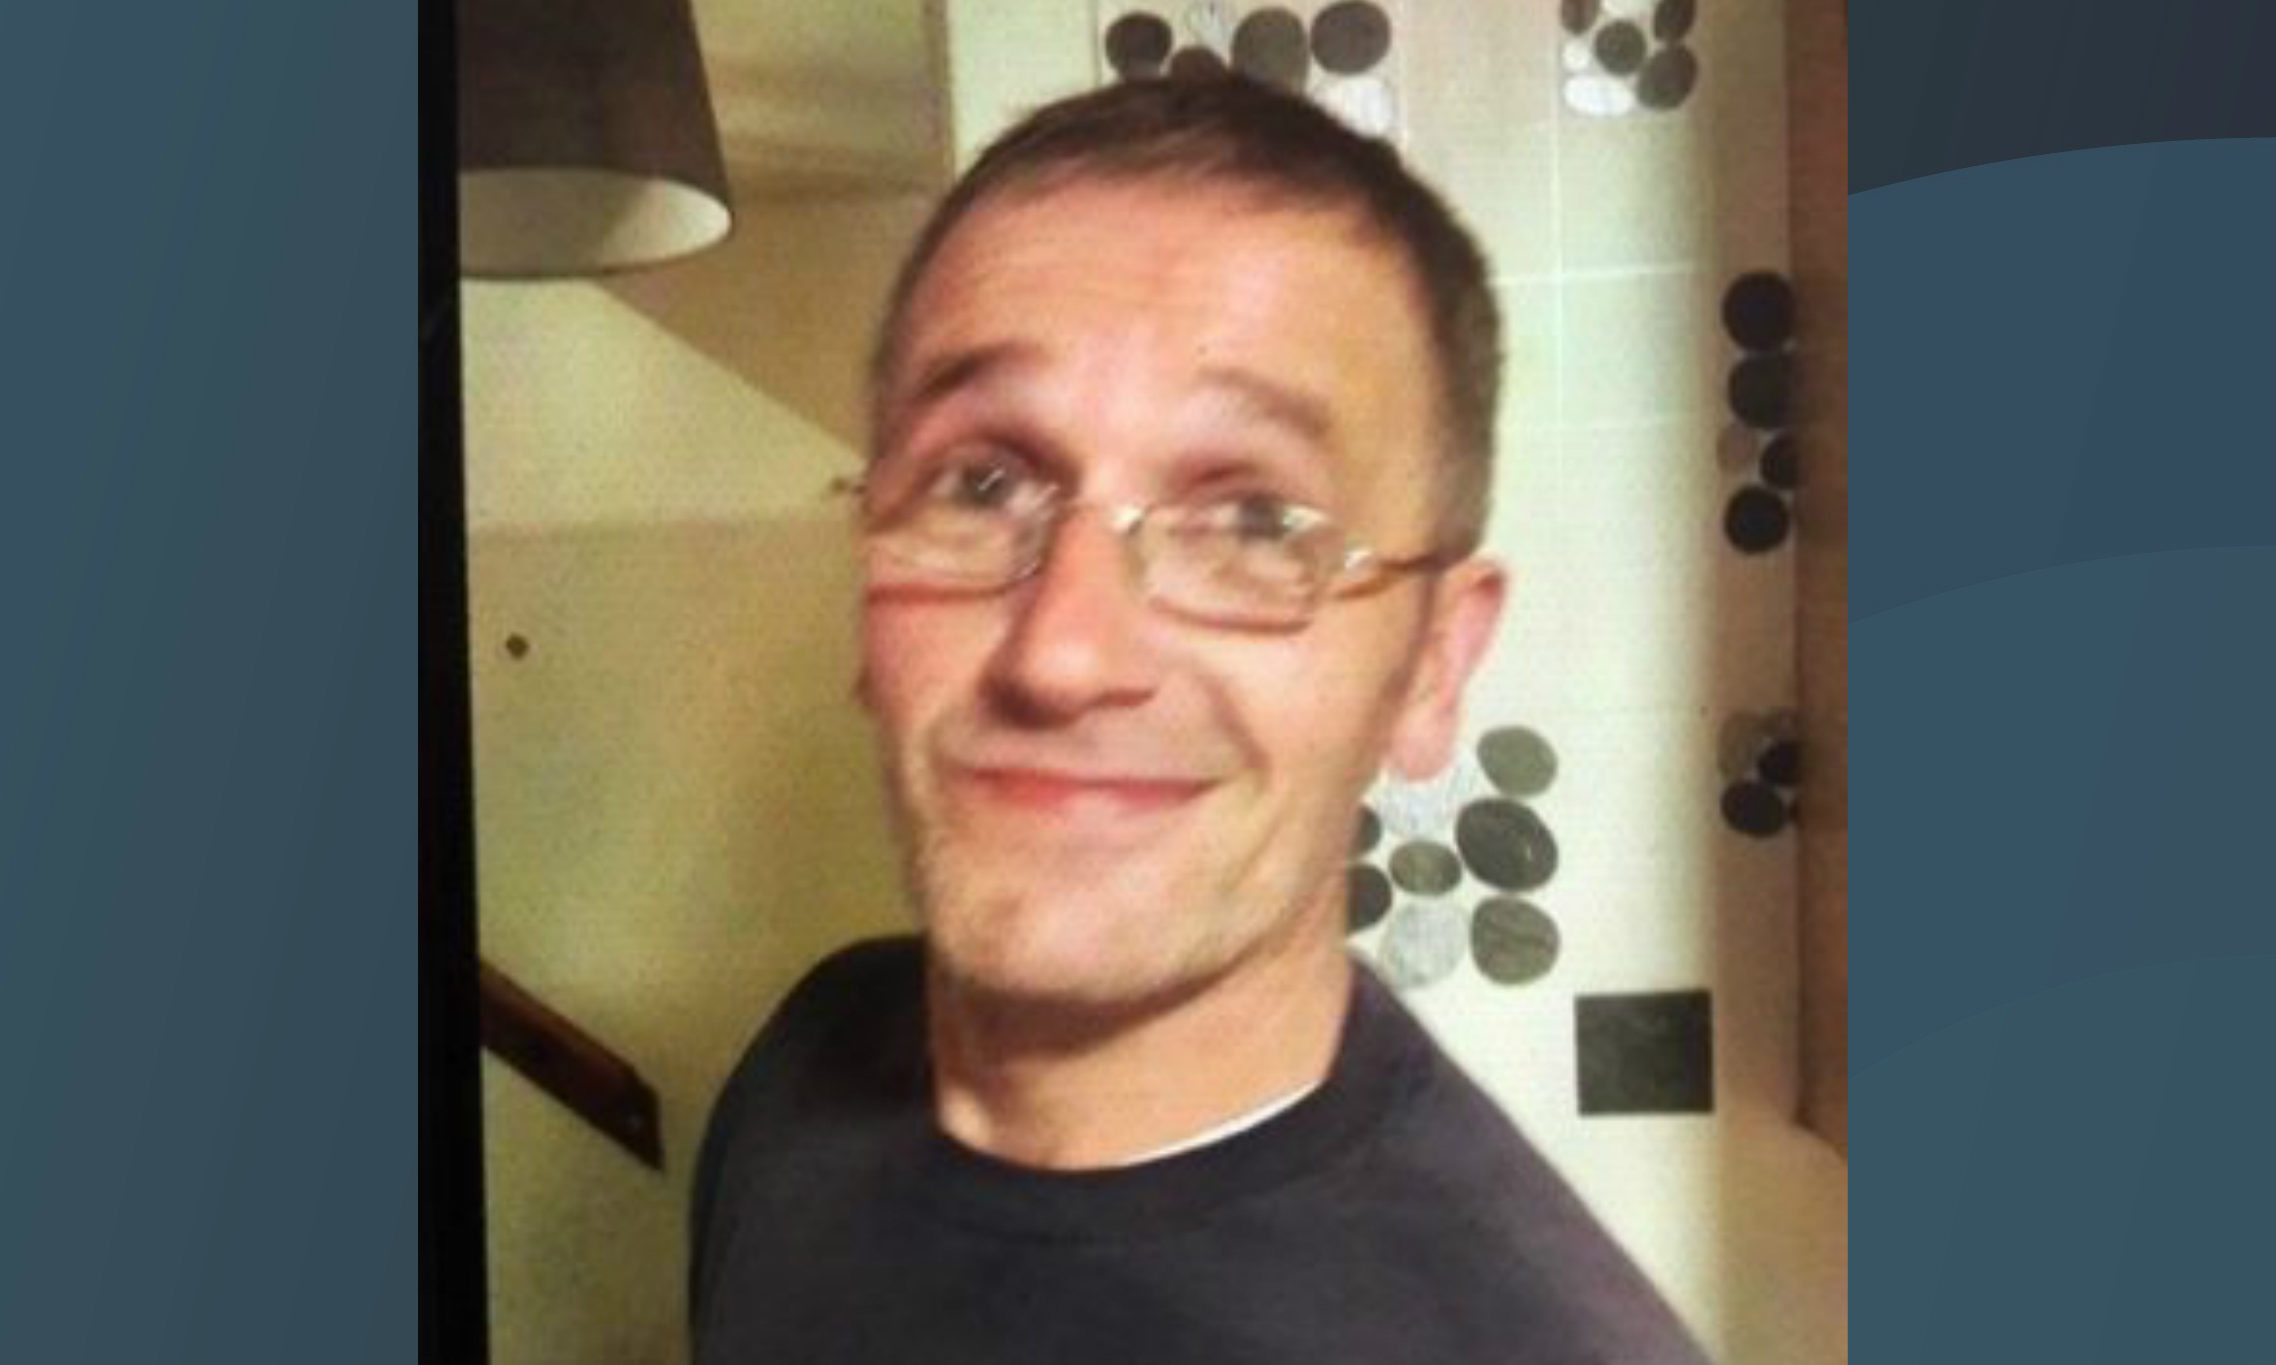 John Bedborough was reported missing from his home in Oakley